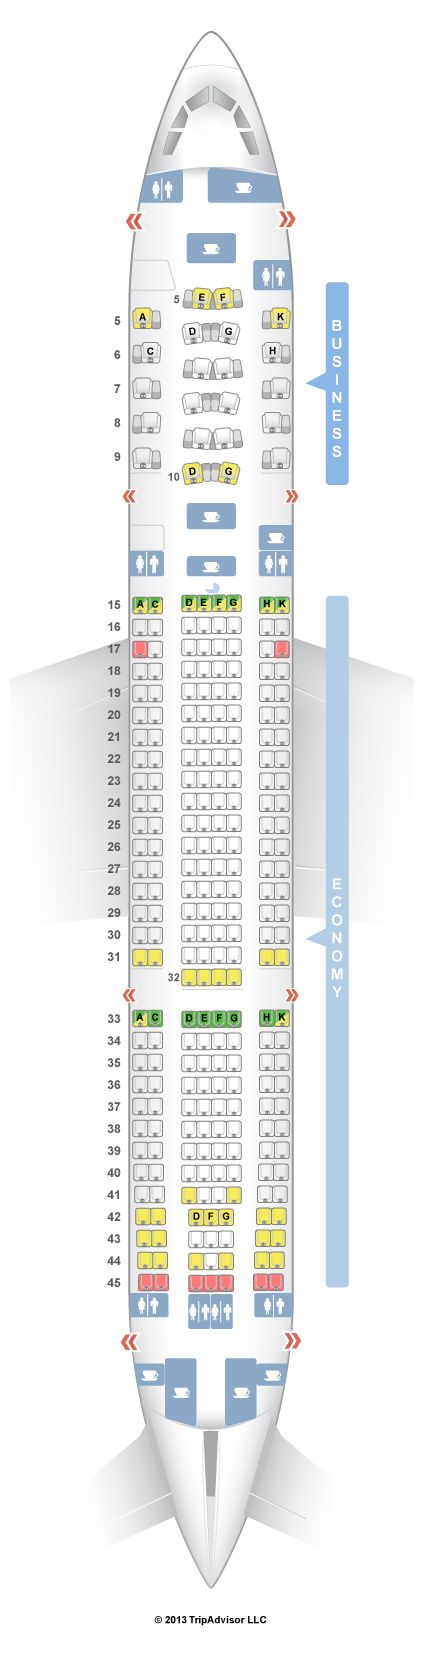 Best Airbus A Seating Ideas On Pinterest Airbus A - Us airways seat map